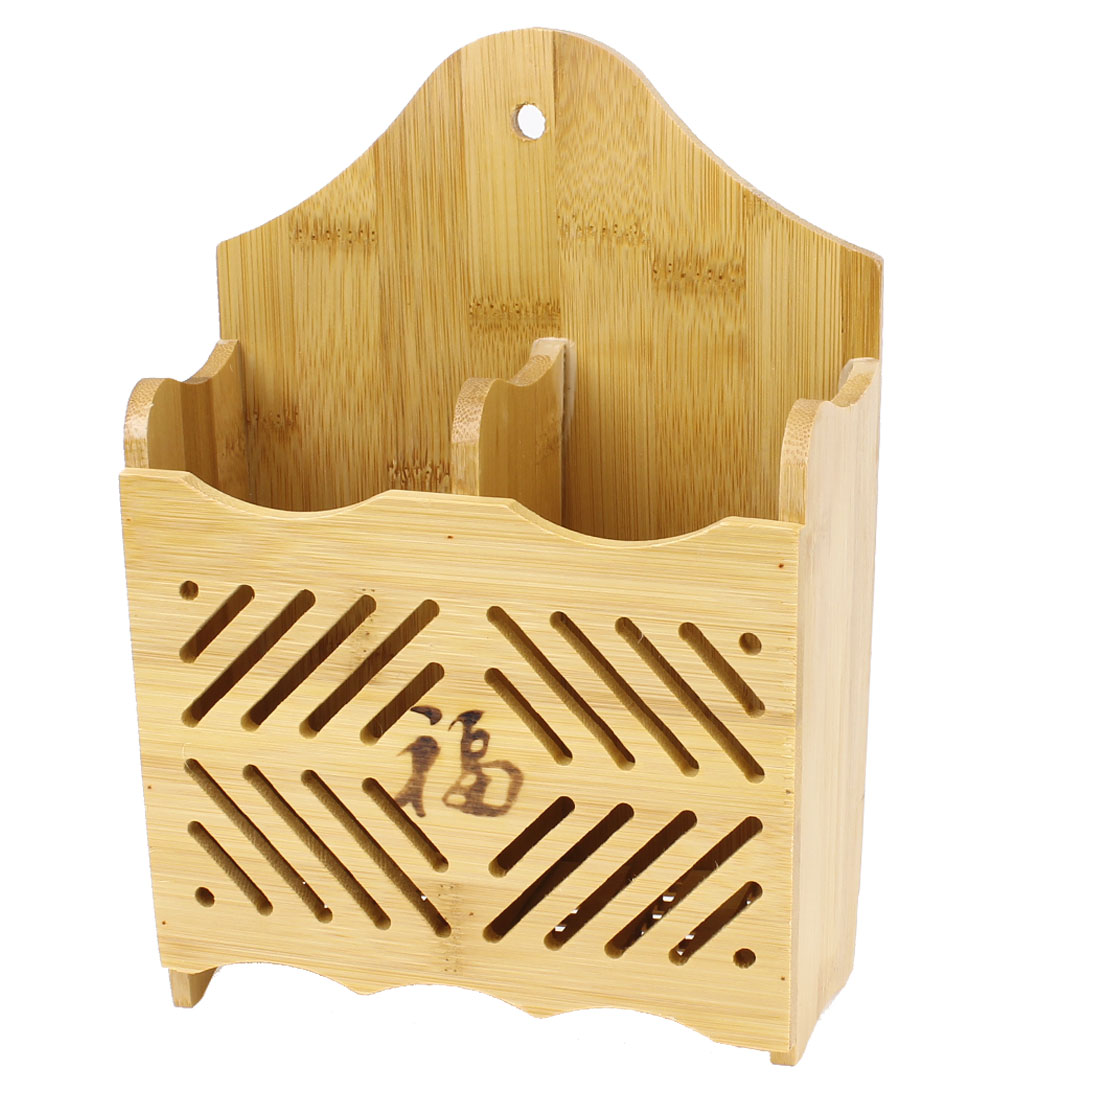 Wood Color 2 Compartments Hollow Out Bamboo Pencil Pen Organizer Box